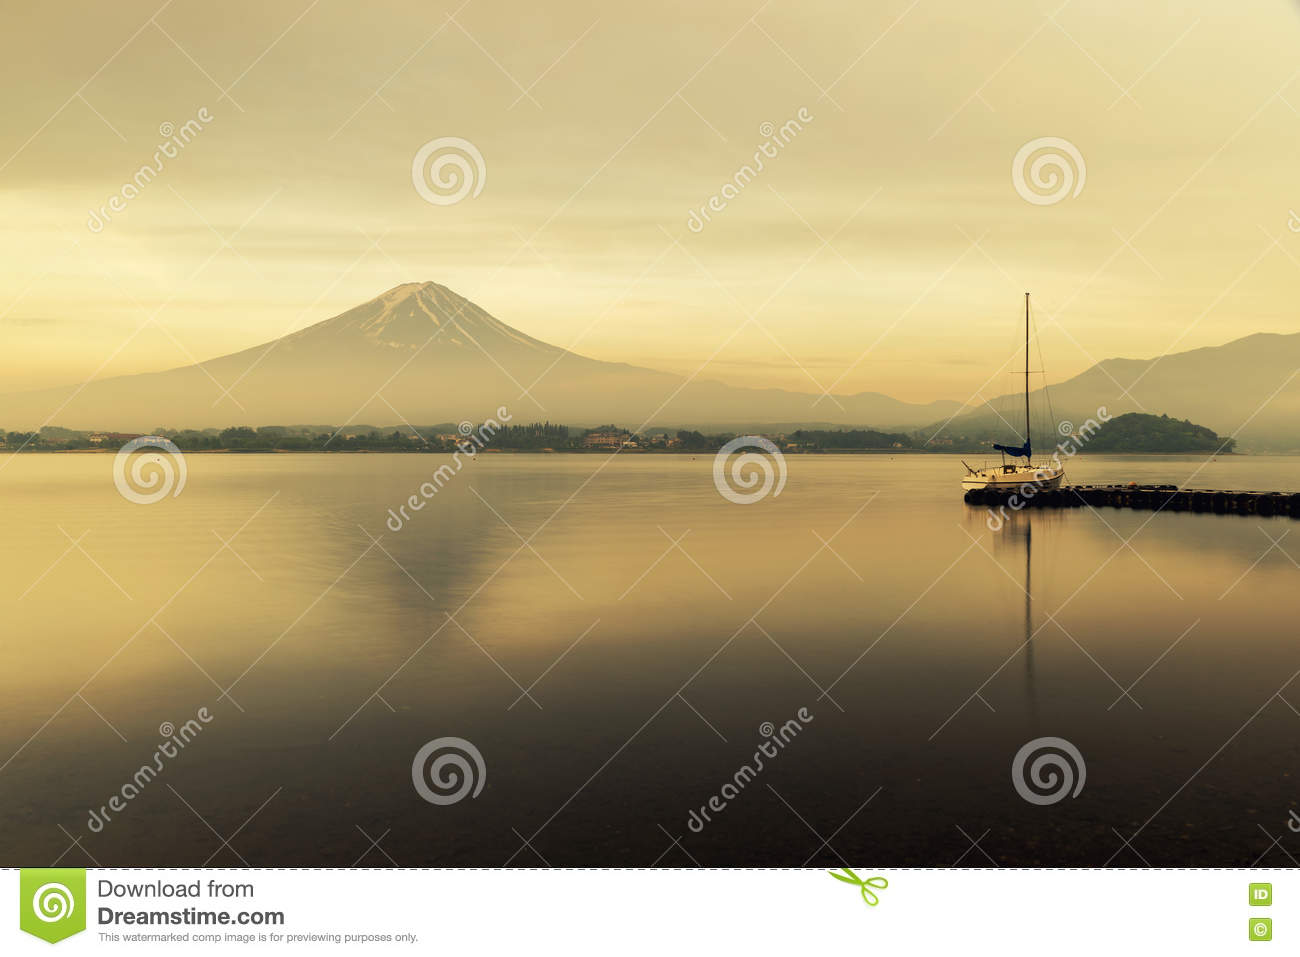 Mt. Fuji at Lake Kawaguchi during sunrise in Japan.